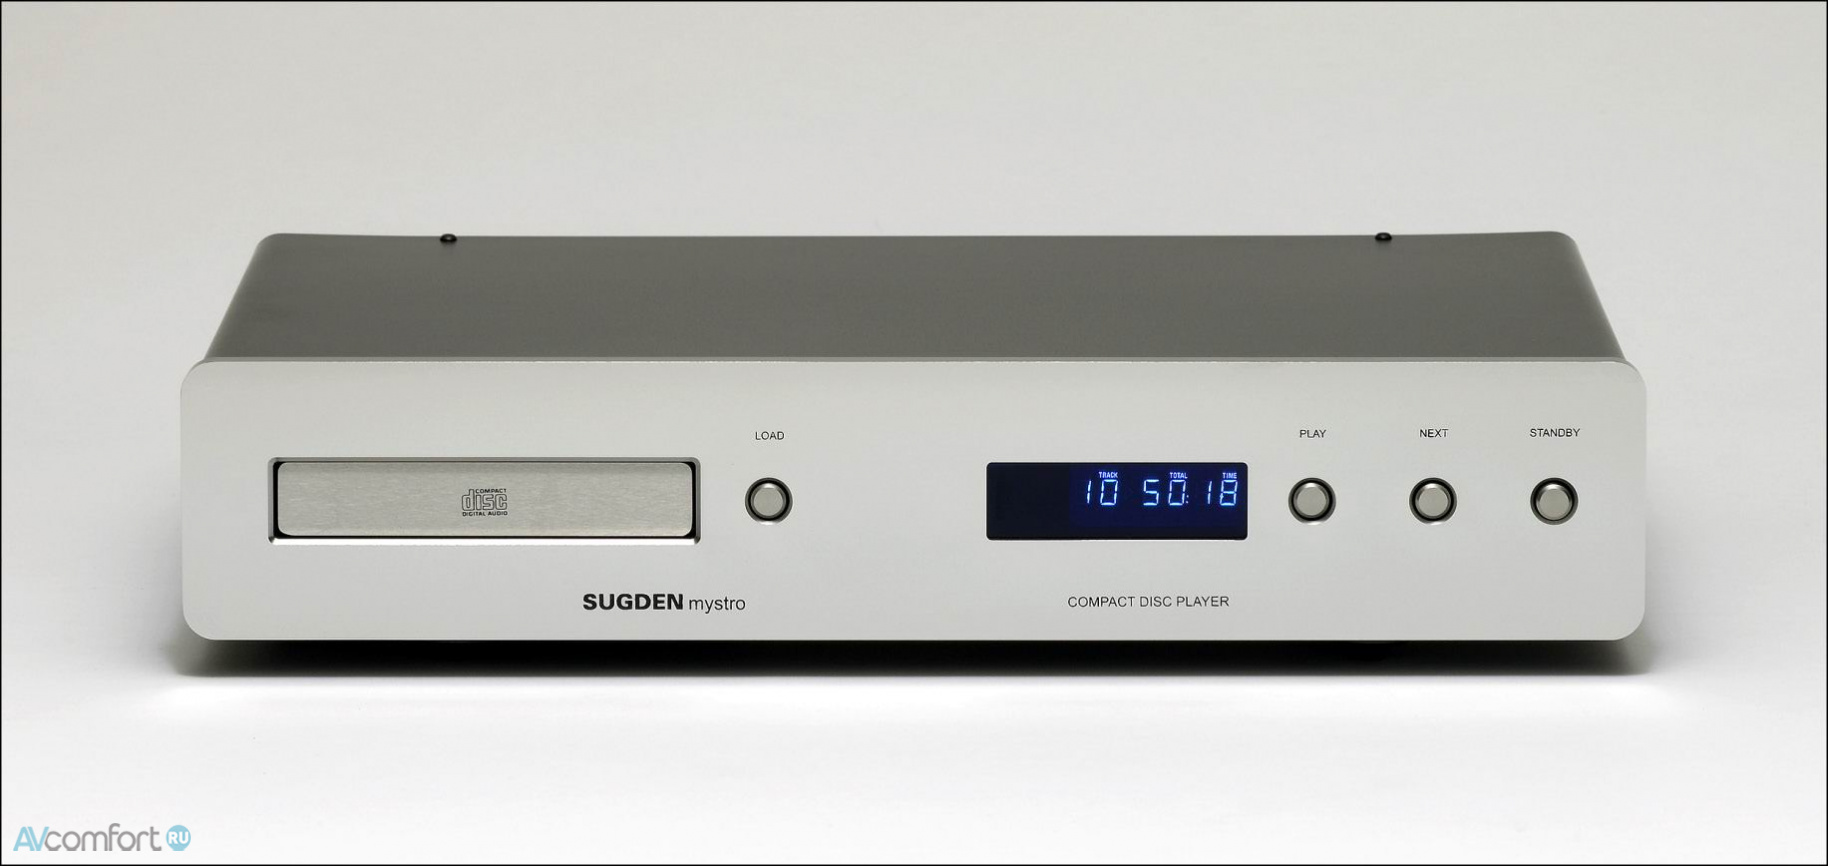 AVComfort, SUGDEN MYSTRO Compact Disc Player